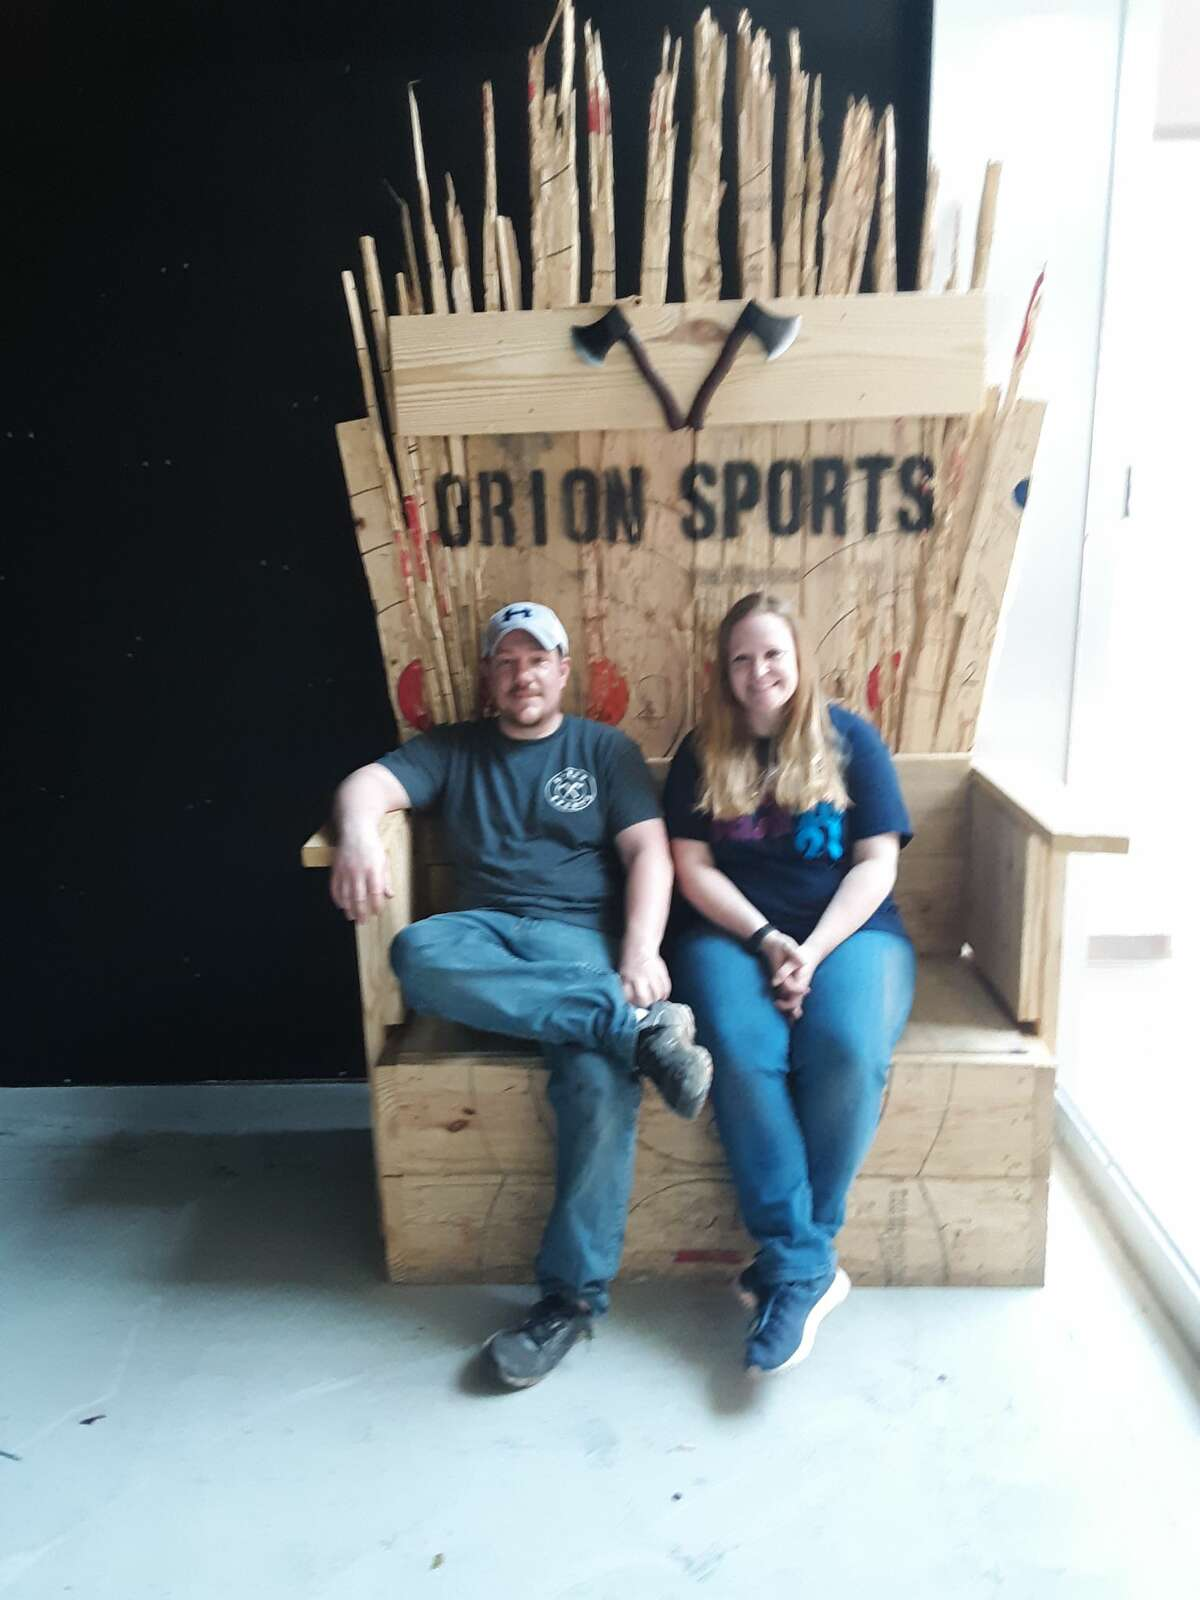 Orion Sports owner Duane Novak and his wife, Tara Novak, have been busy over the past week preparing for the business to reopen in a much larger space in the Midland Mall.